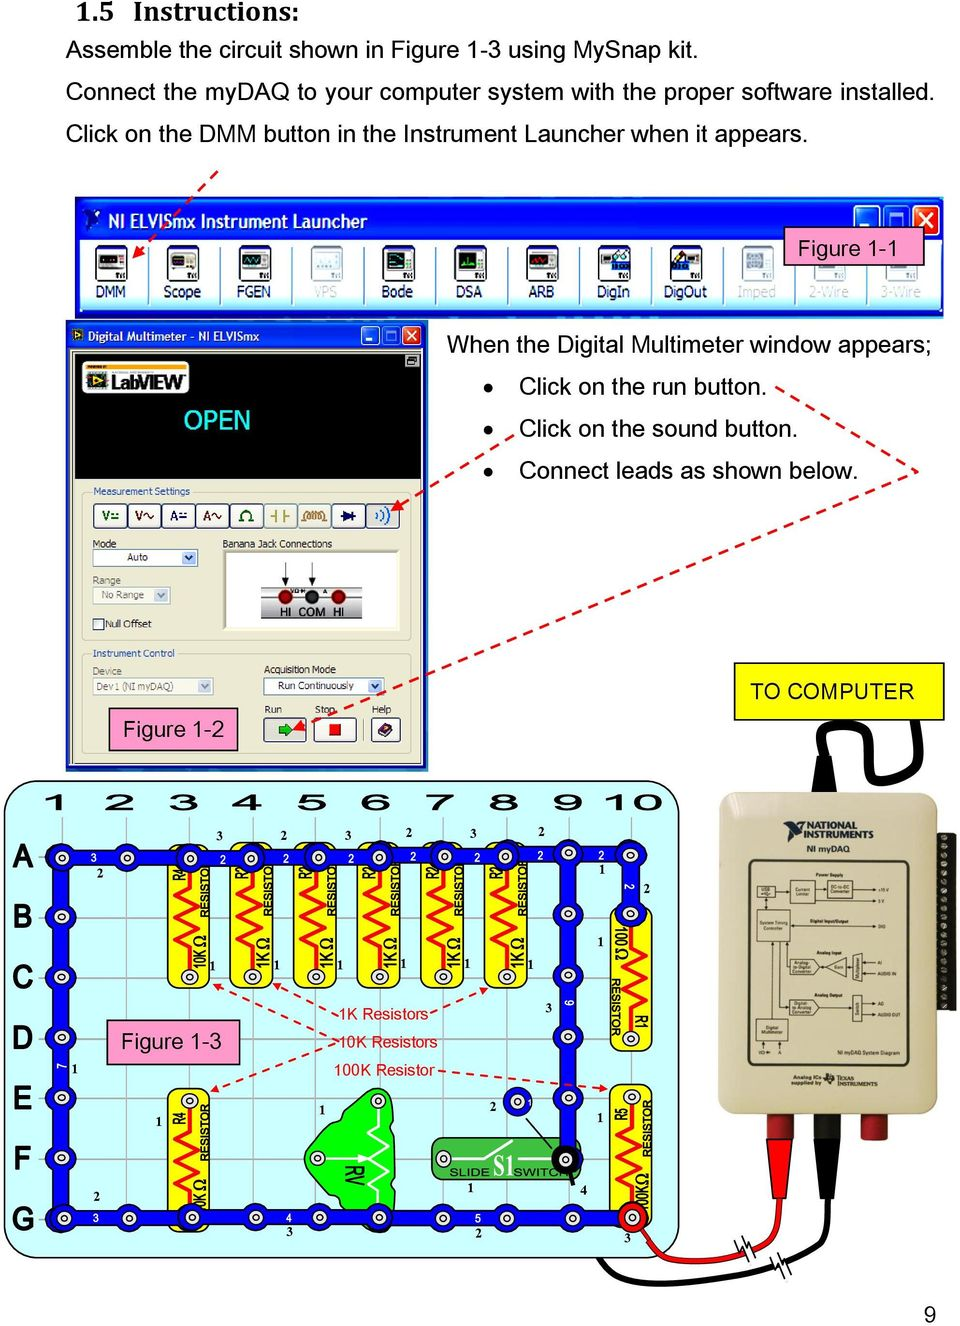 Creative Inquiry Electronics Project Lab Manual Ni Mydaq Pdf Simple Circuit Making Activity And Click On The Dmm Button In Instrument Launcher When It Appears